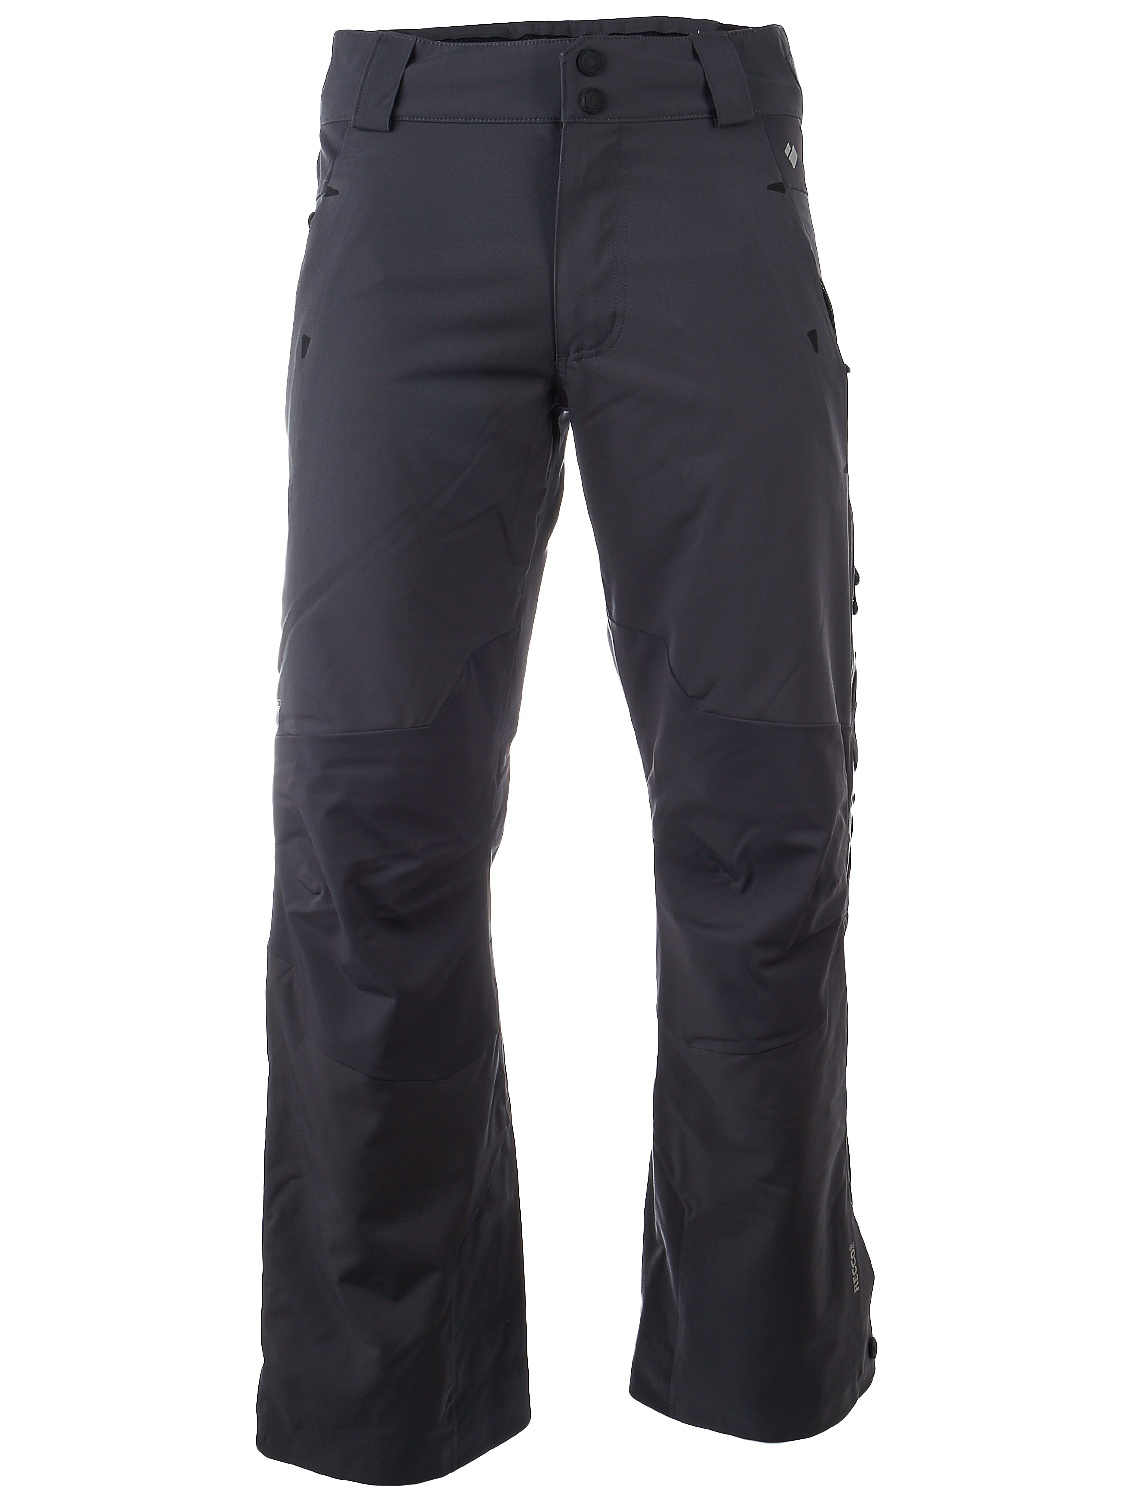 Obermeyer 25075 Men's Process Snow Pants  - Mens